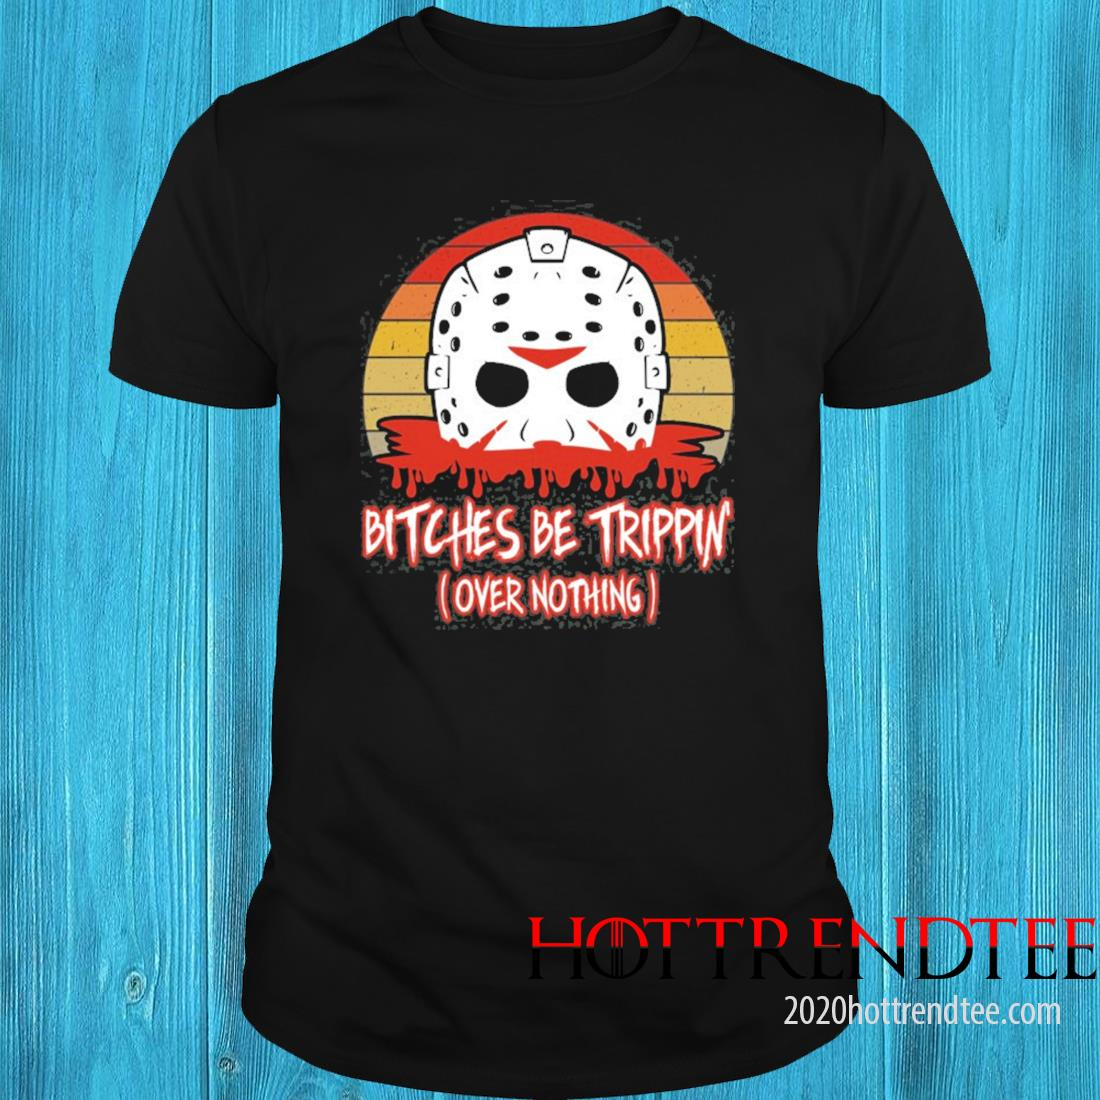 Slasher Horror Movie Humor Bitches Be Trippin Over Nothing Shirt